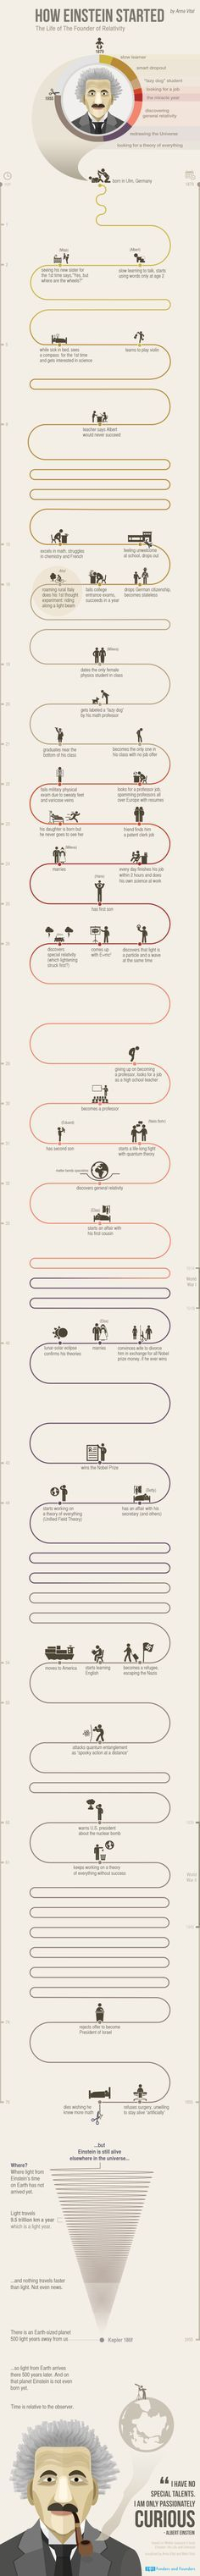 How Einstein started #infographic